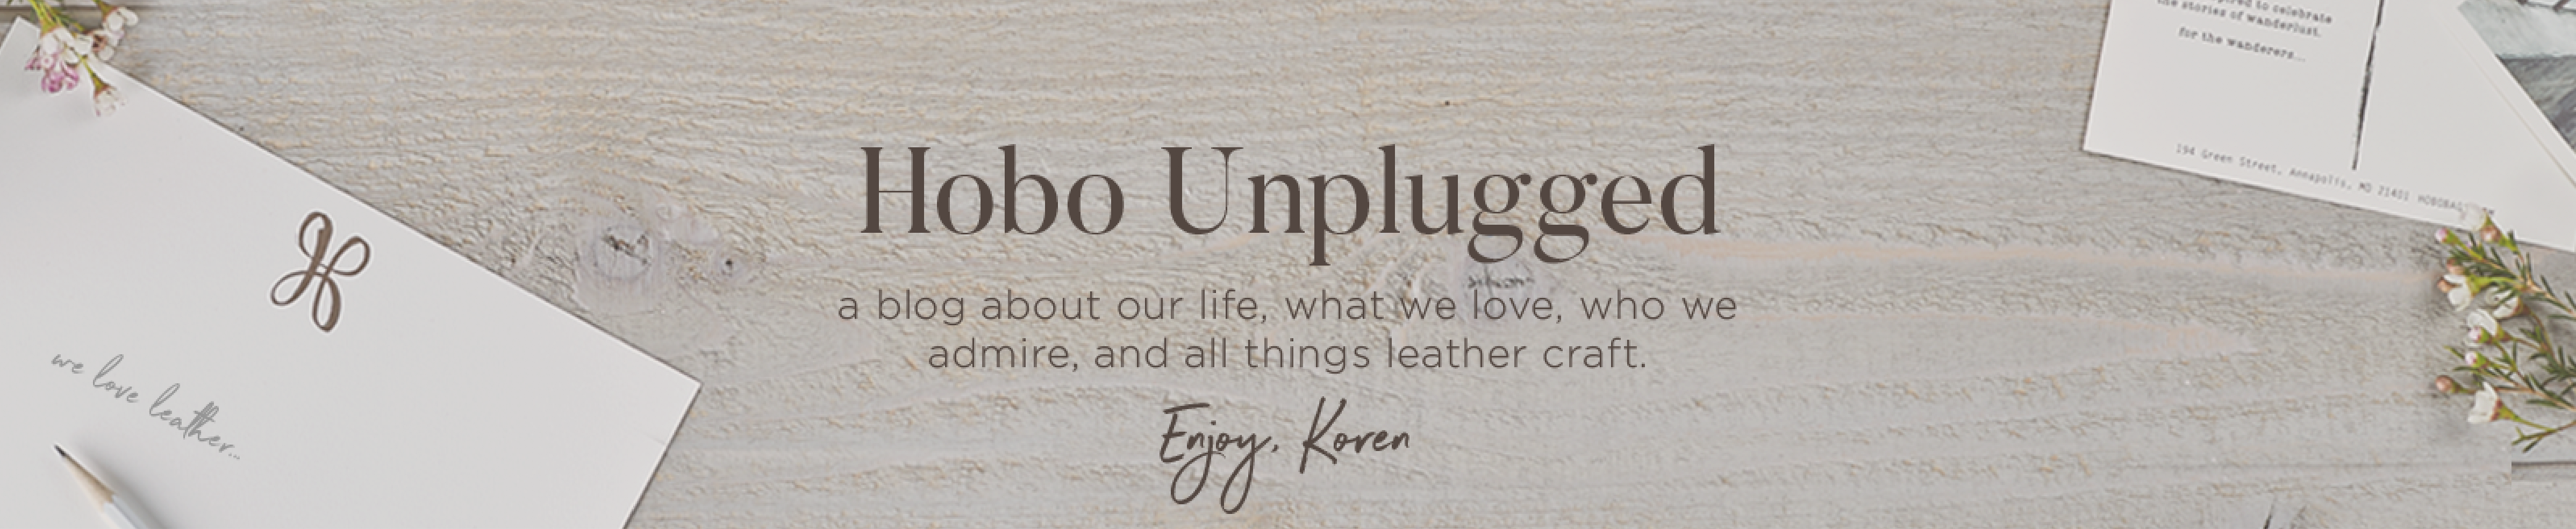 A blog about our life, what we love, who we admire and all things leather craft.